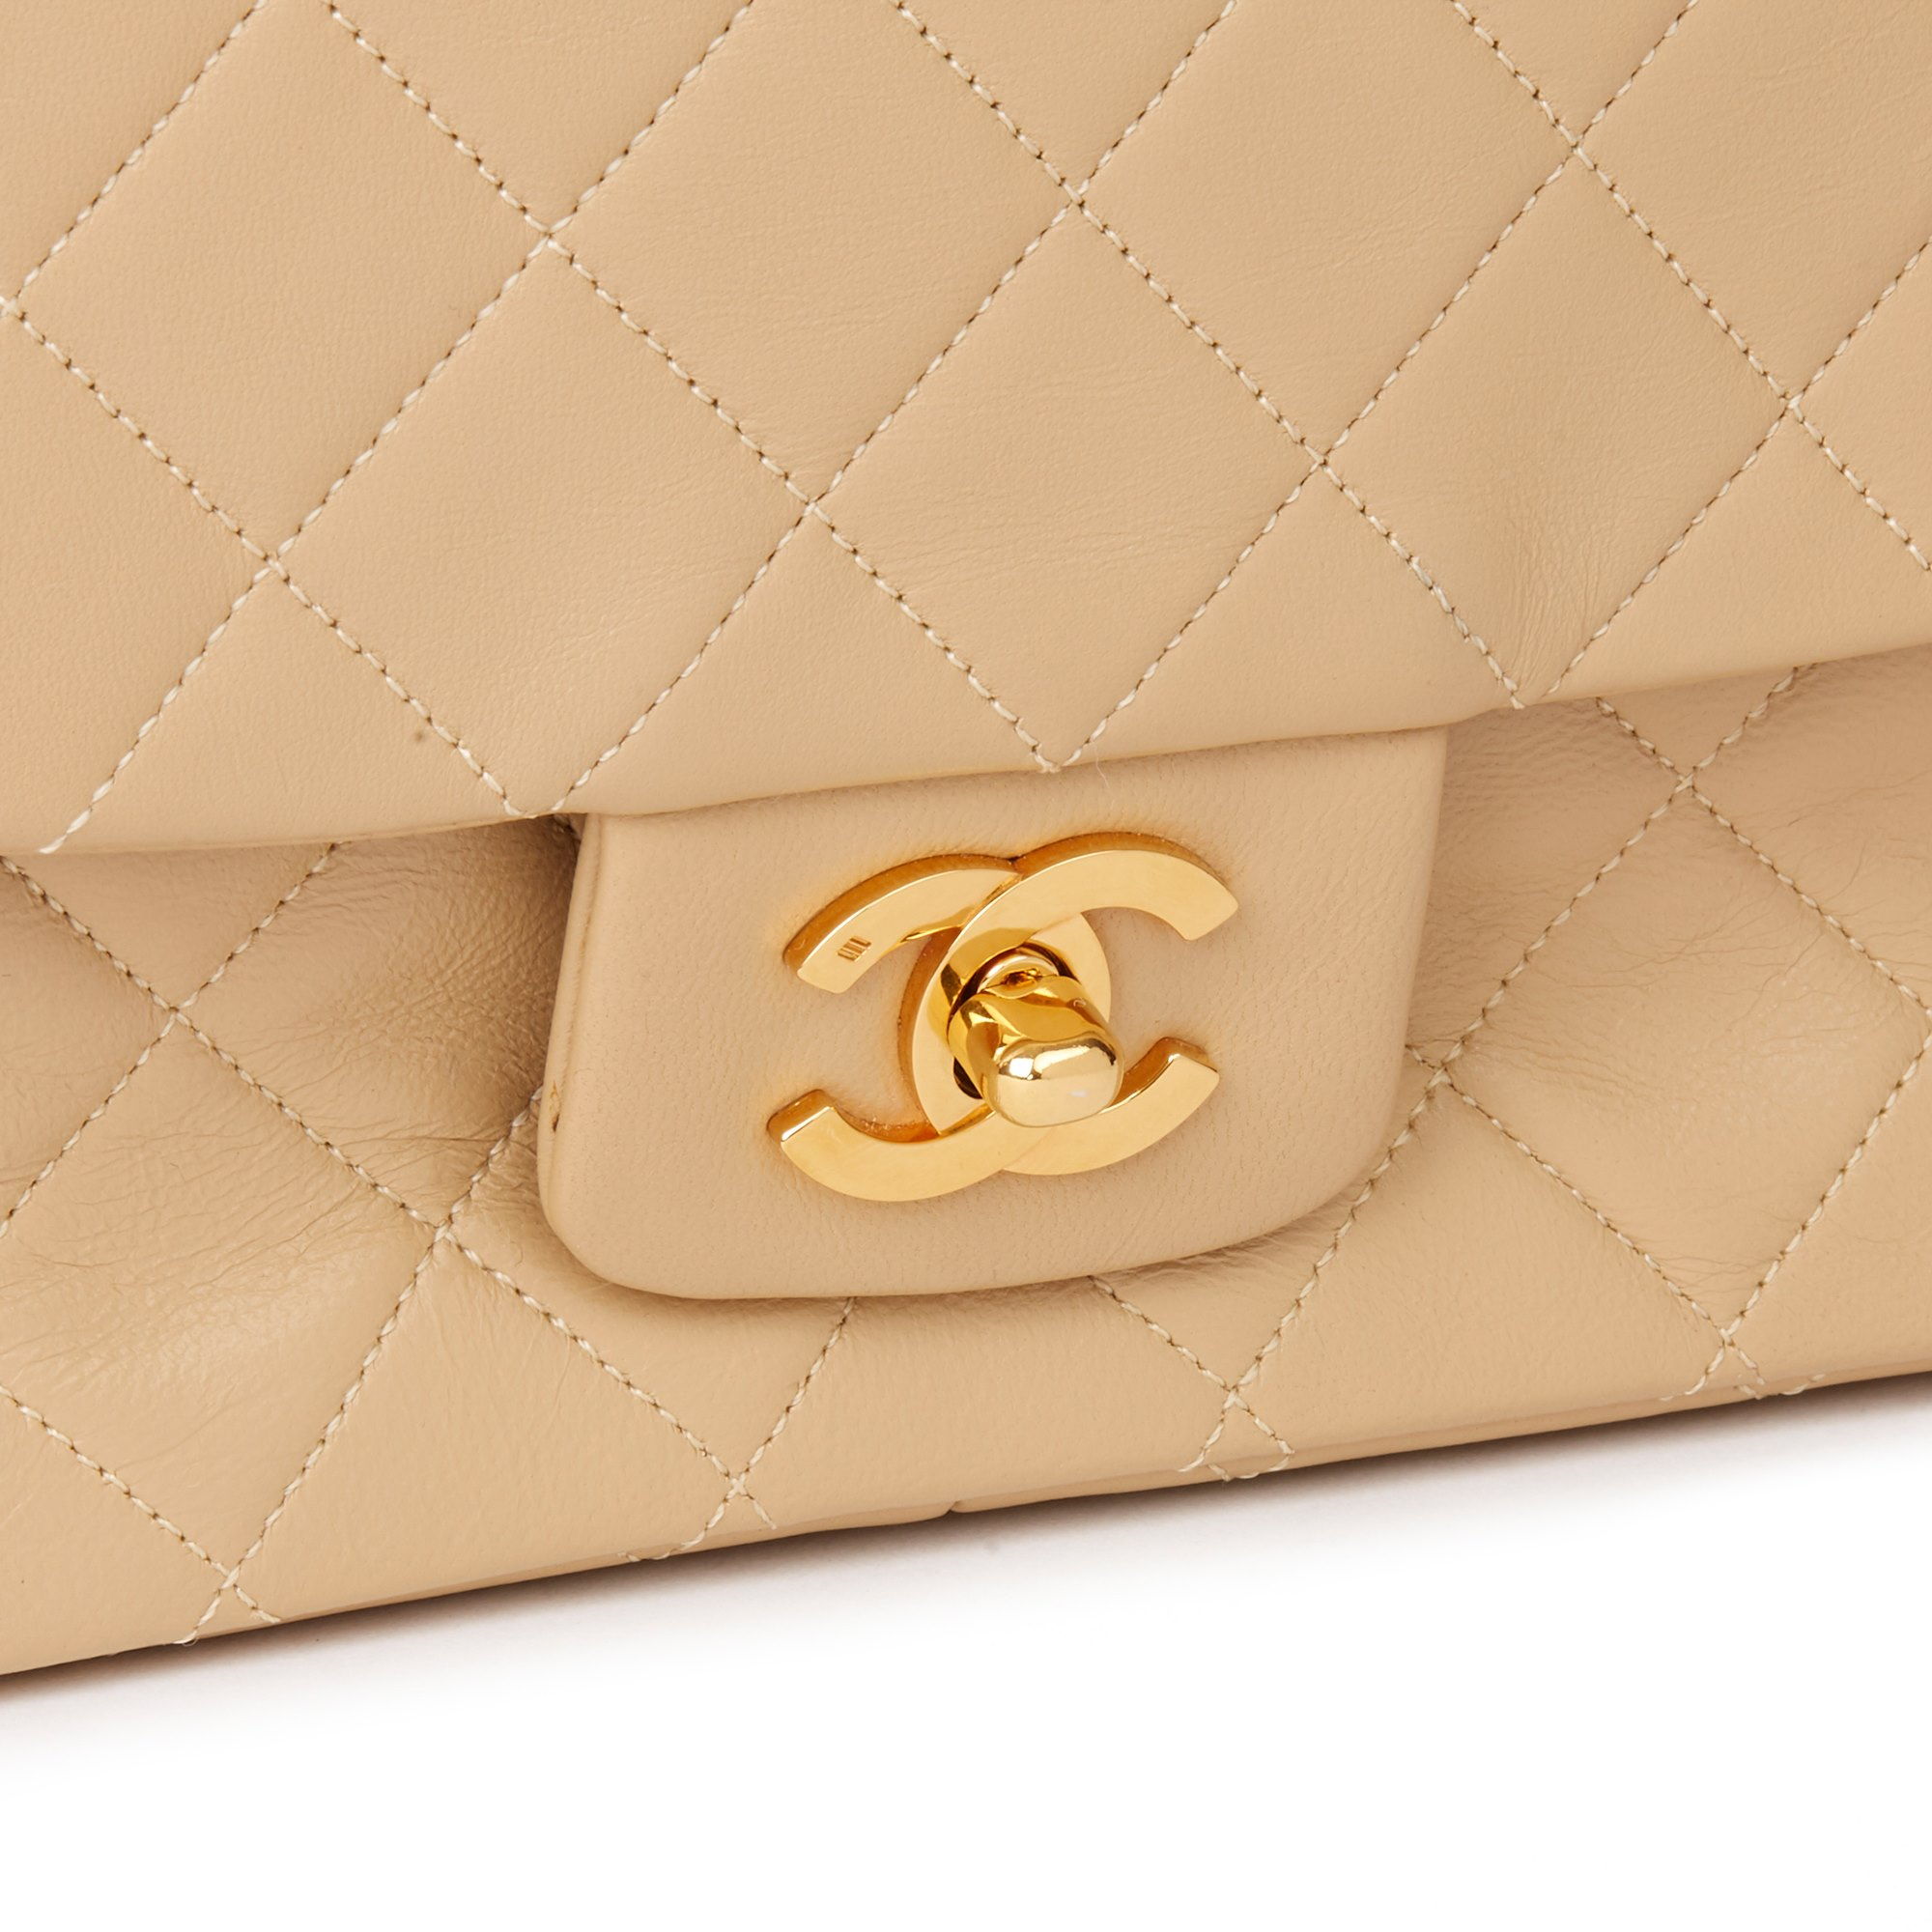 Chanel Beige Quilted Lambskin Vintage Classic Single Flap Bag with Wallet